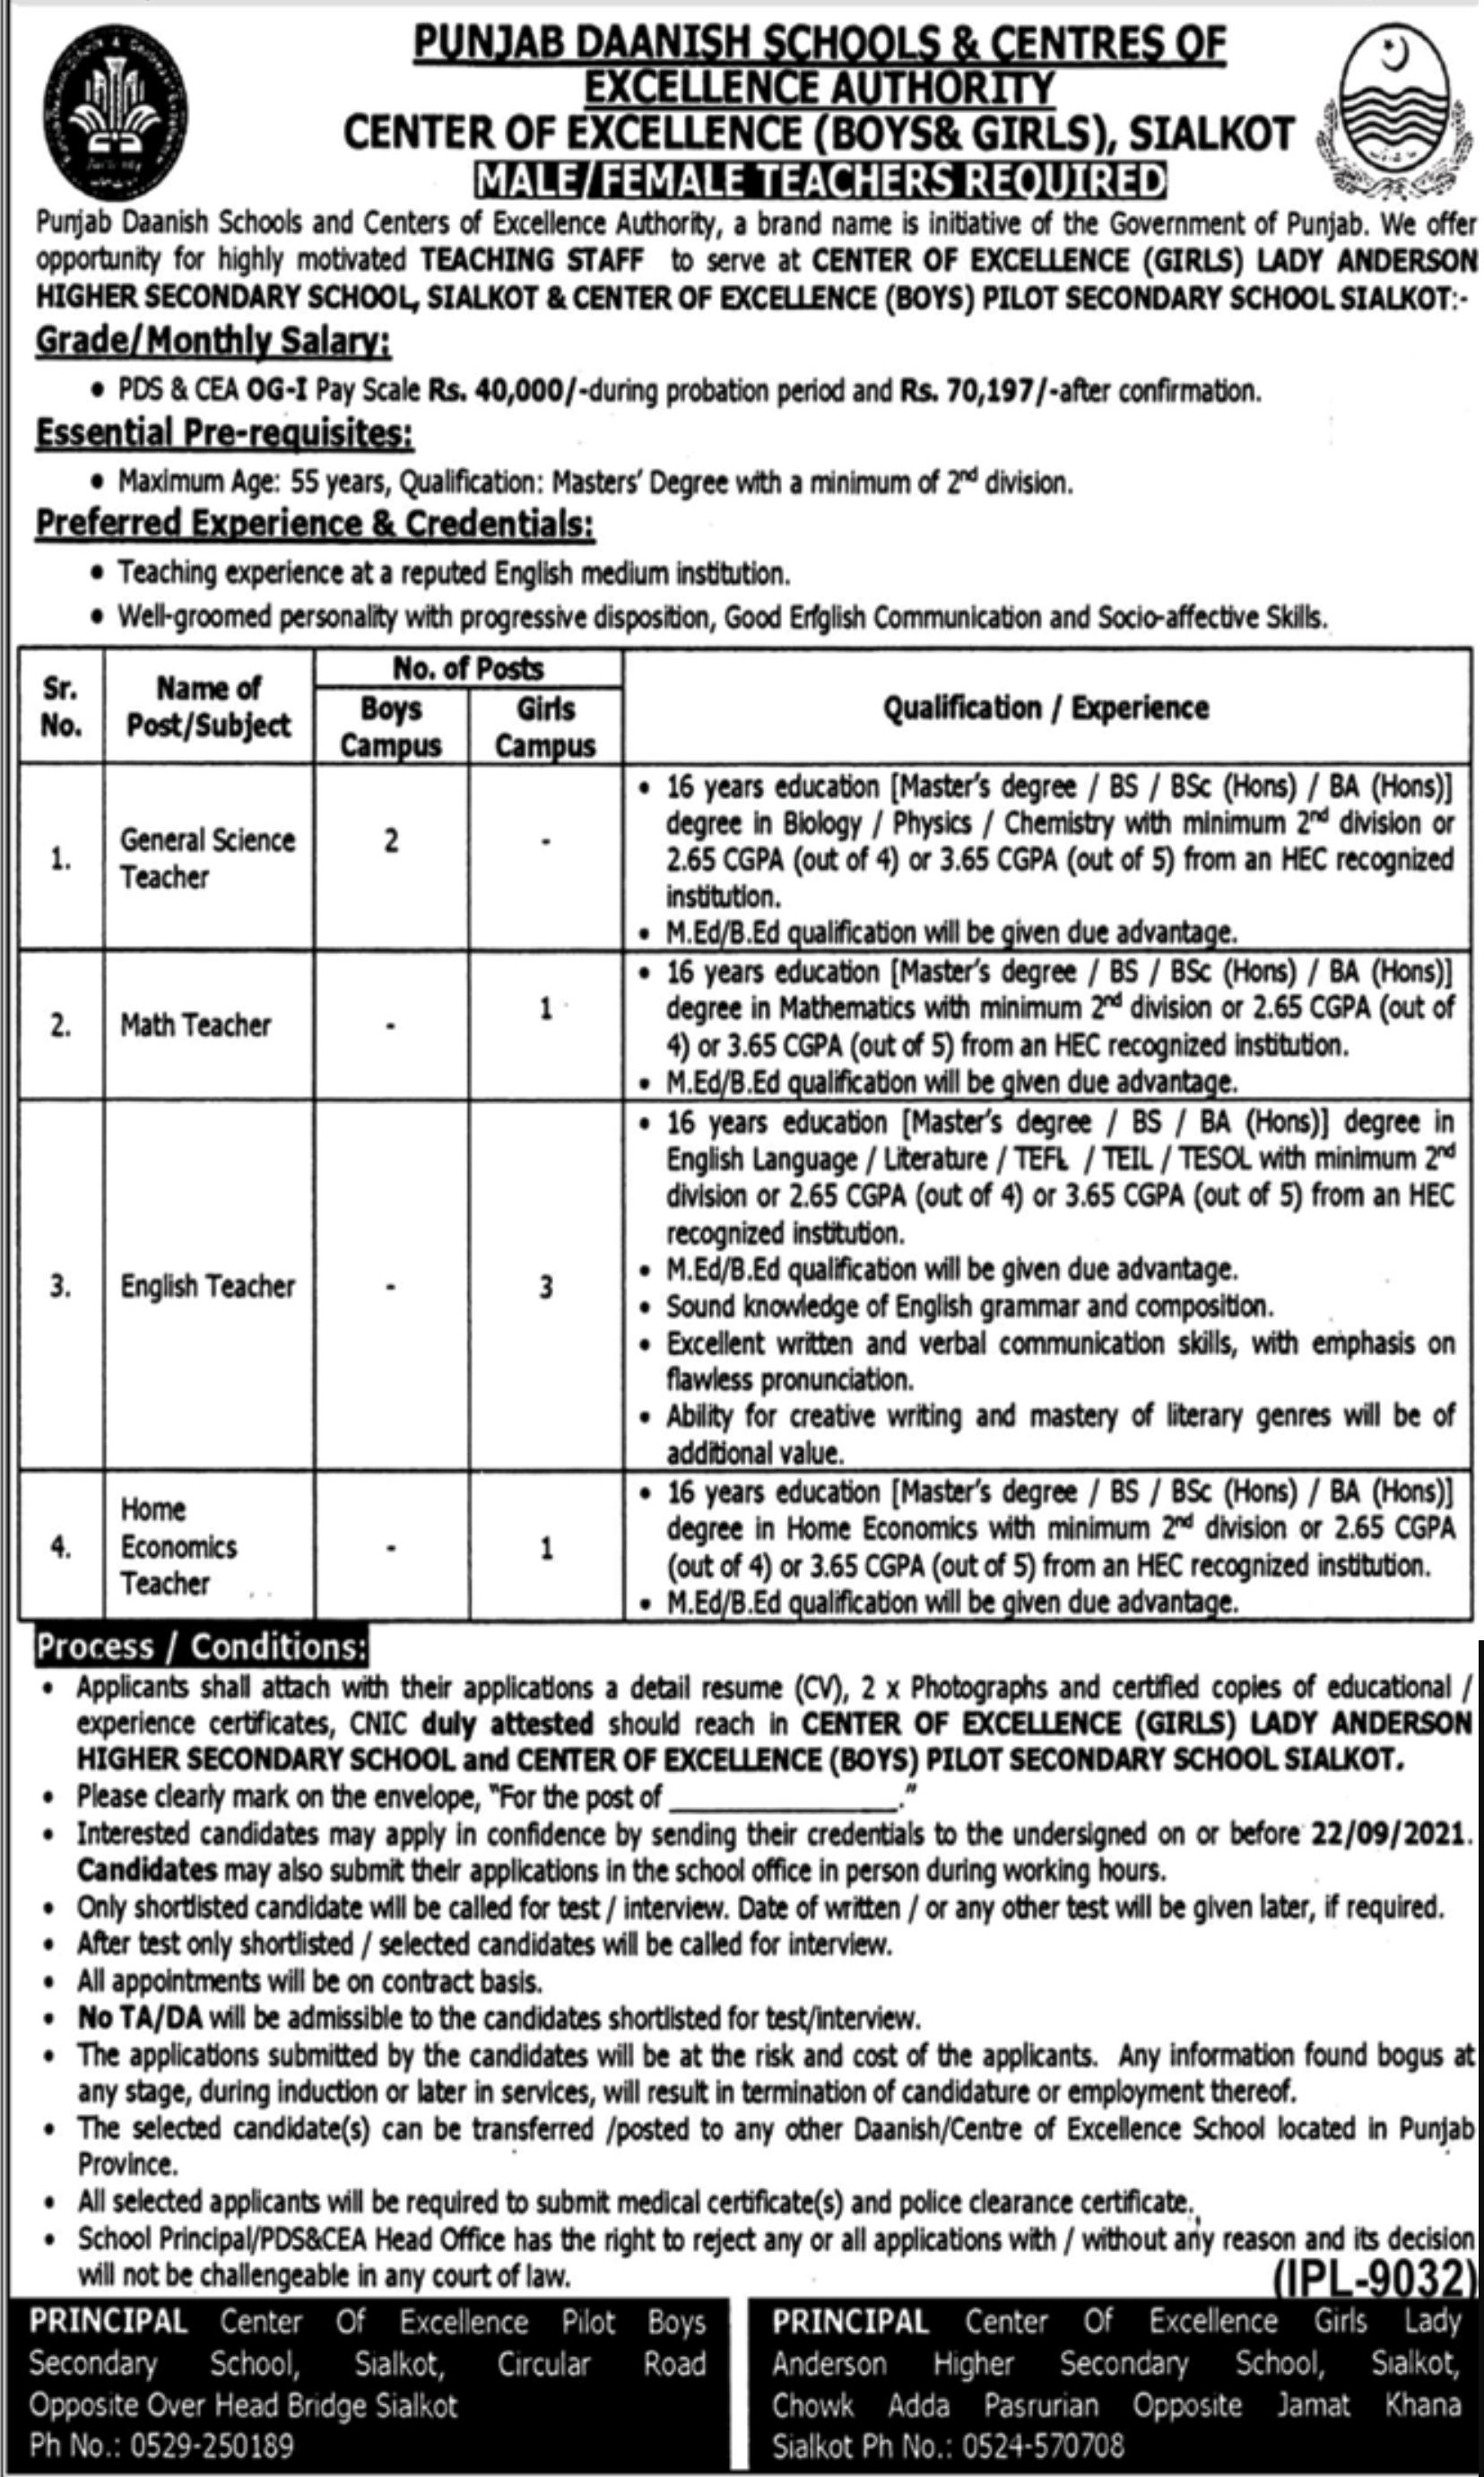 Punjab Daanish Schools & Centres of Excellence Authority Jobs 2021 3